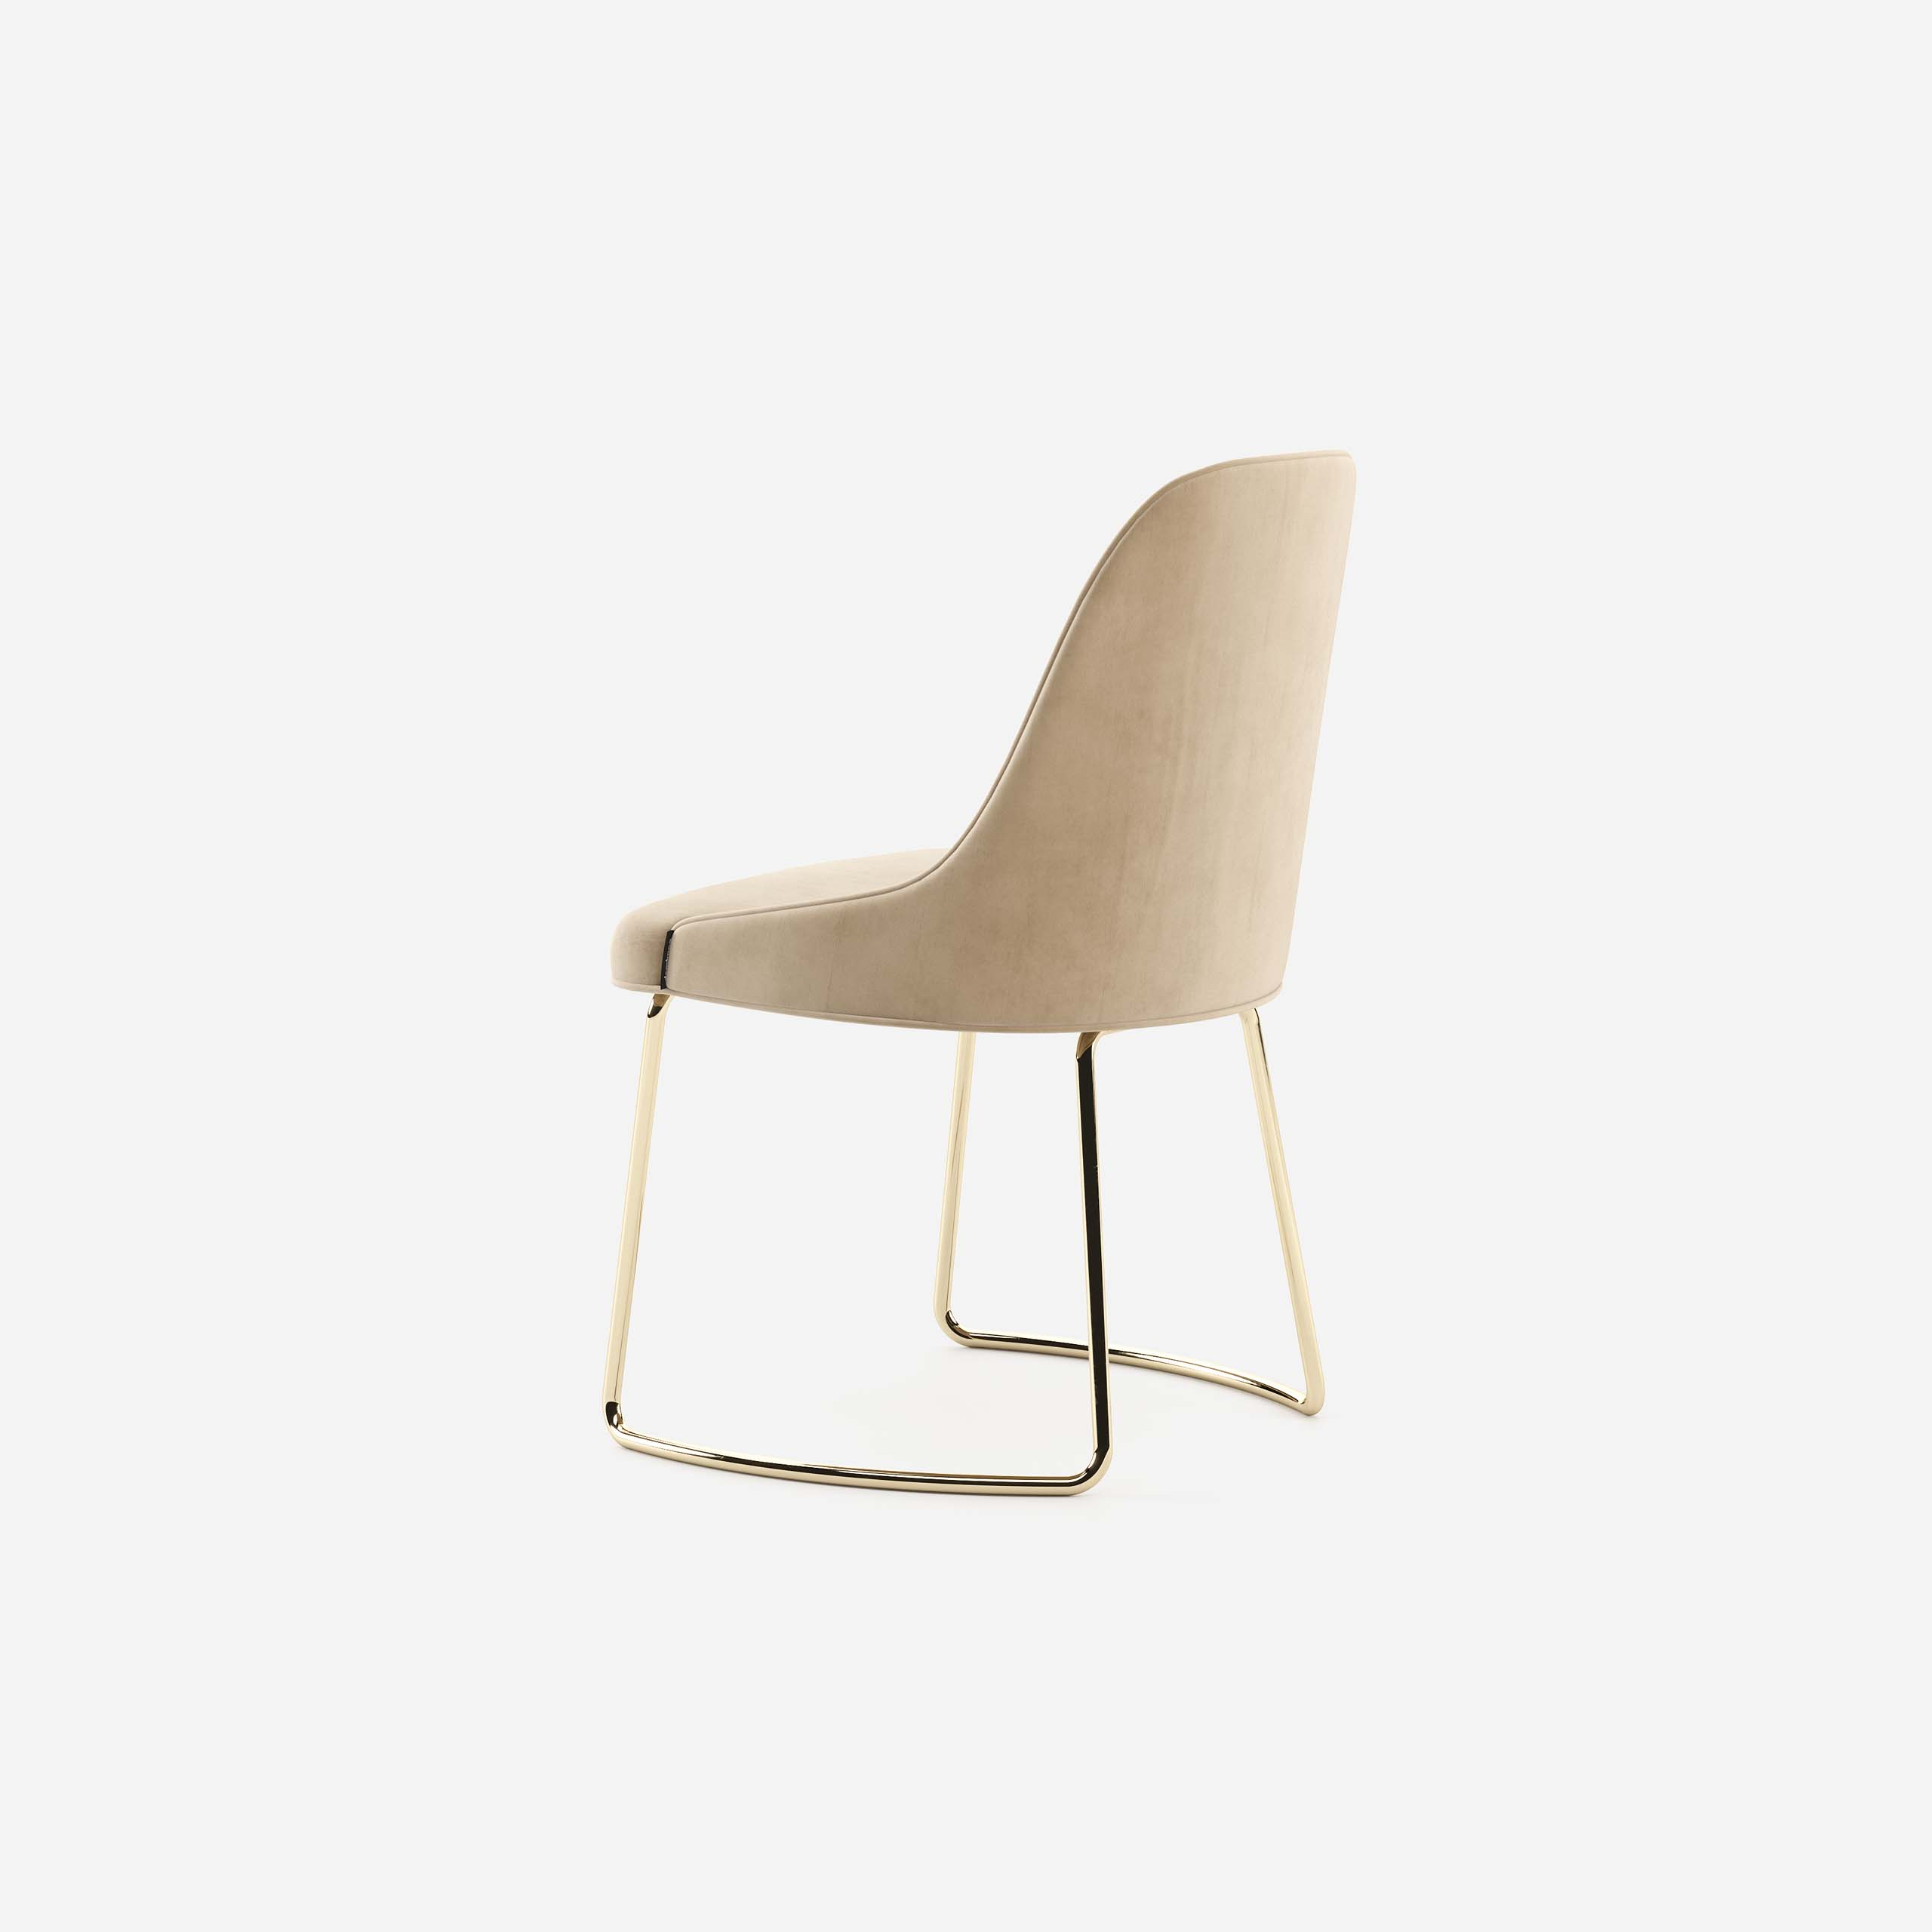 Ruah dining chair - domkapa 2021 new collection - dining room decor